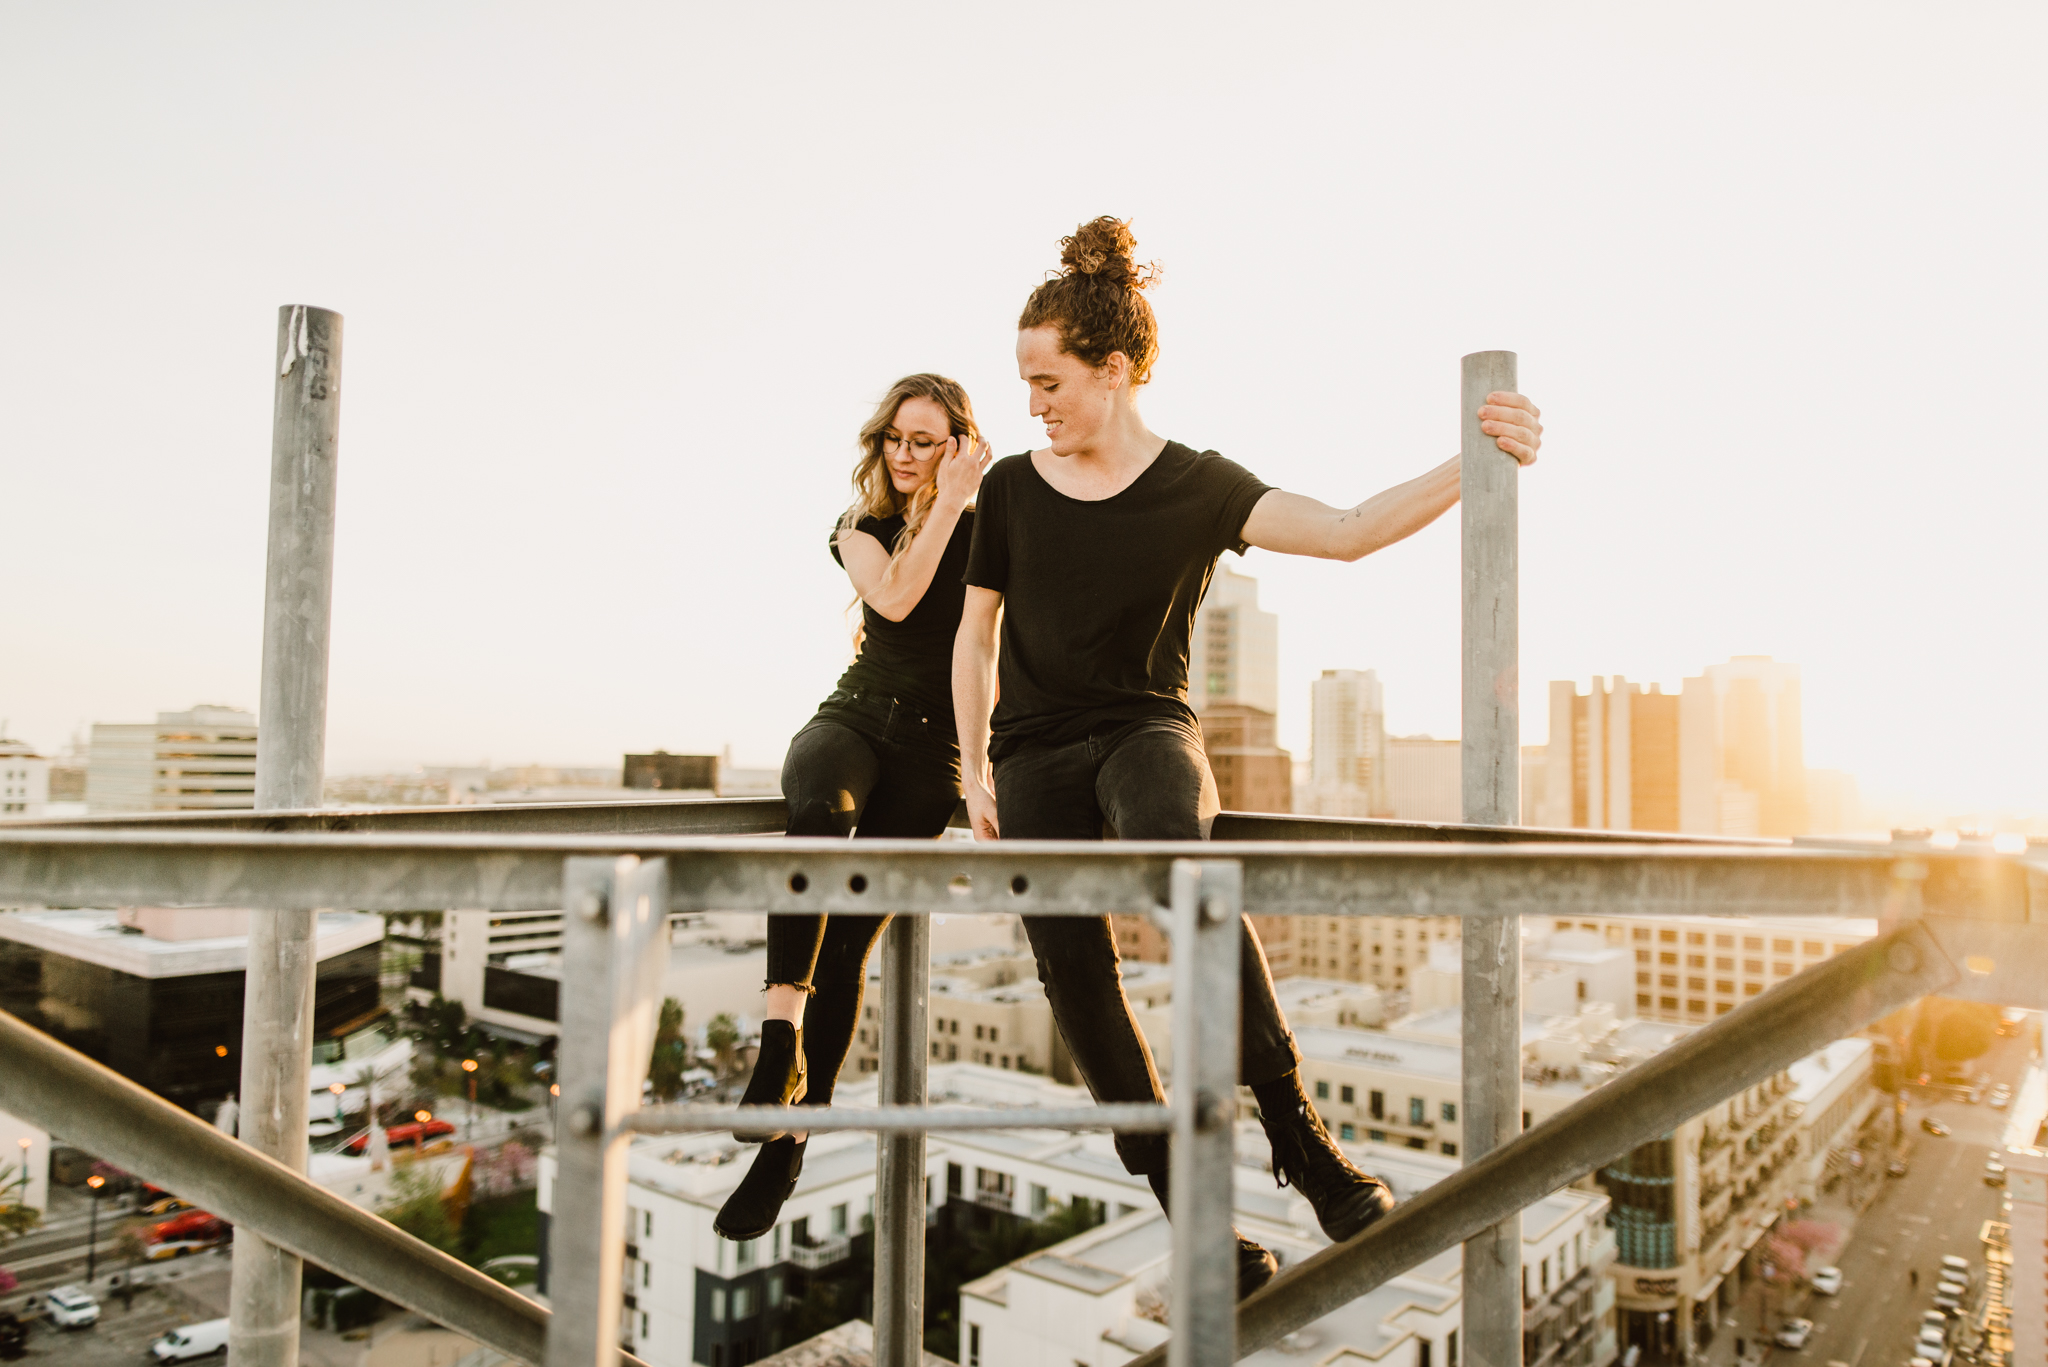 ©Isaiah-&-Taylor-Photography---Urban-Rooftop-Engagement,-Los-Angeles-Wedding-Photographer-015.jpg